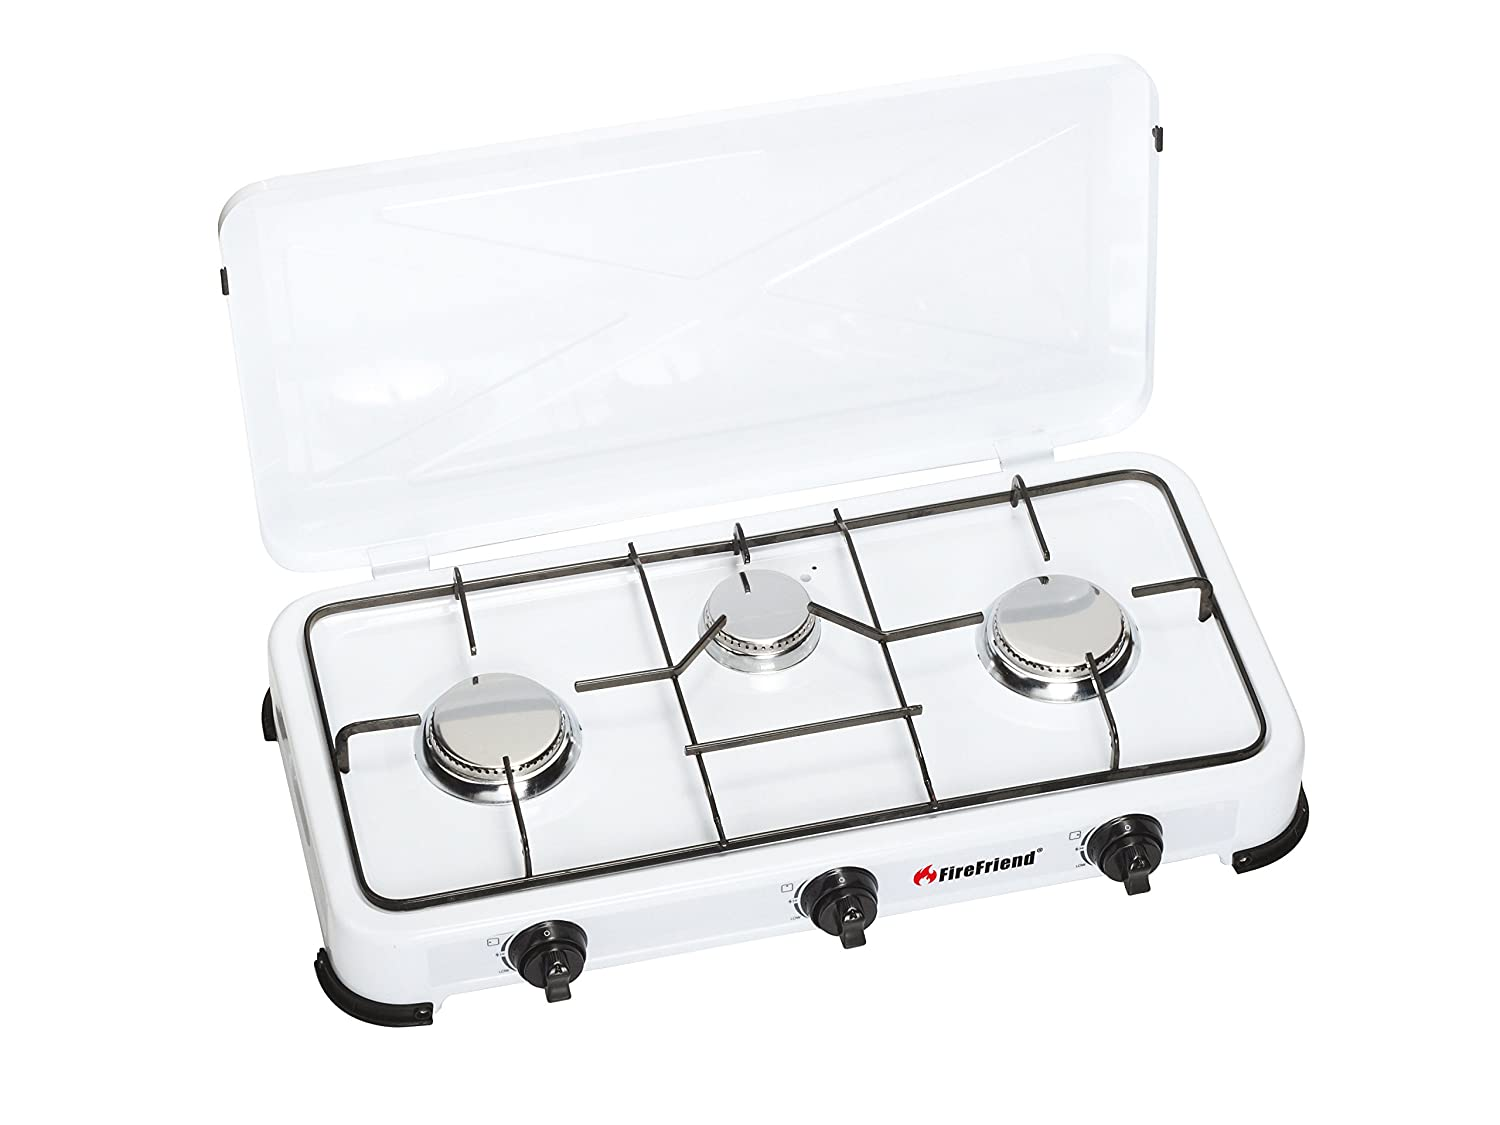 Gas stove 2 burner Firefriend